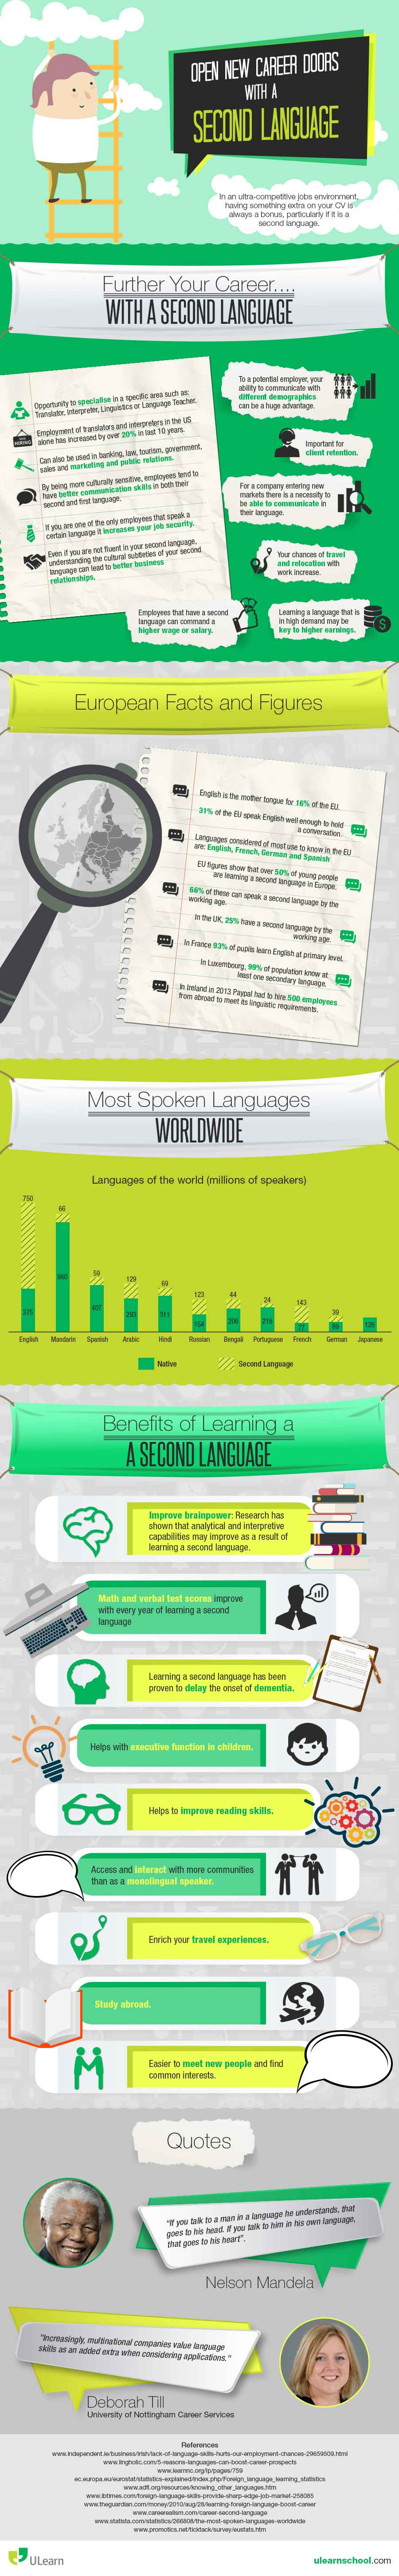 Infographic describing how a second language can help boots your career options.